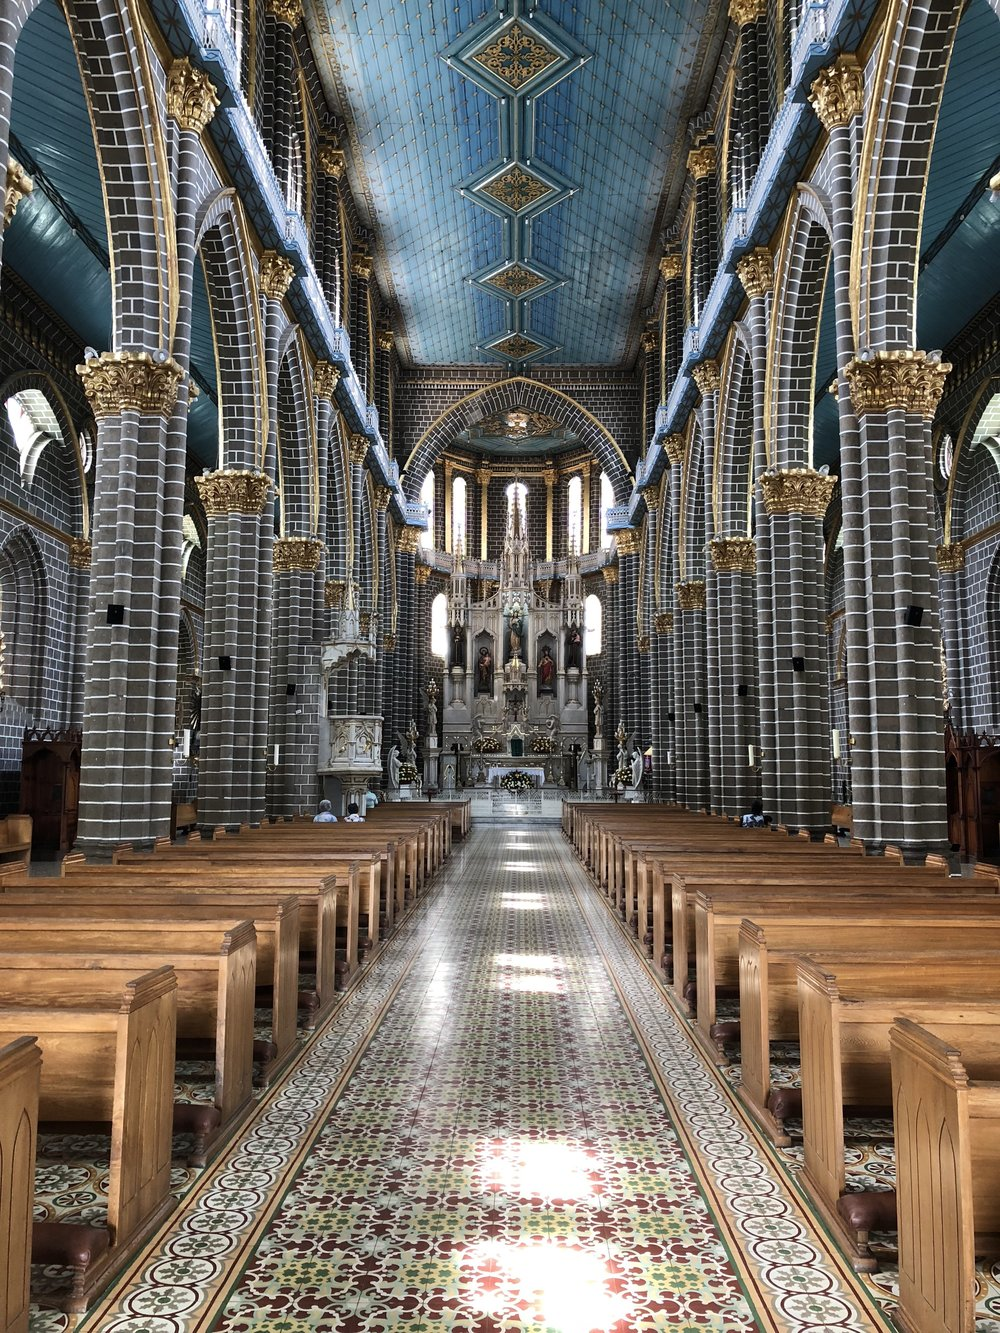 The inside of this beautiful church. I am obsessed with the clean white lines!